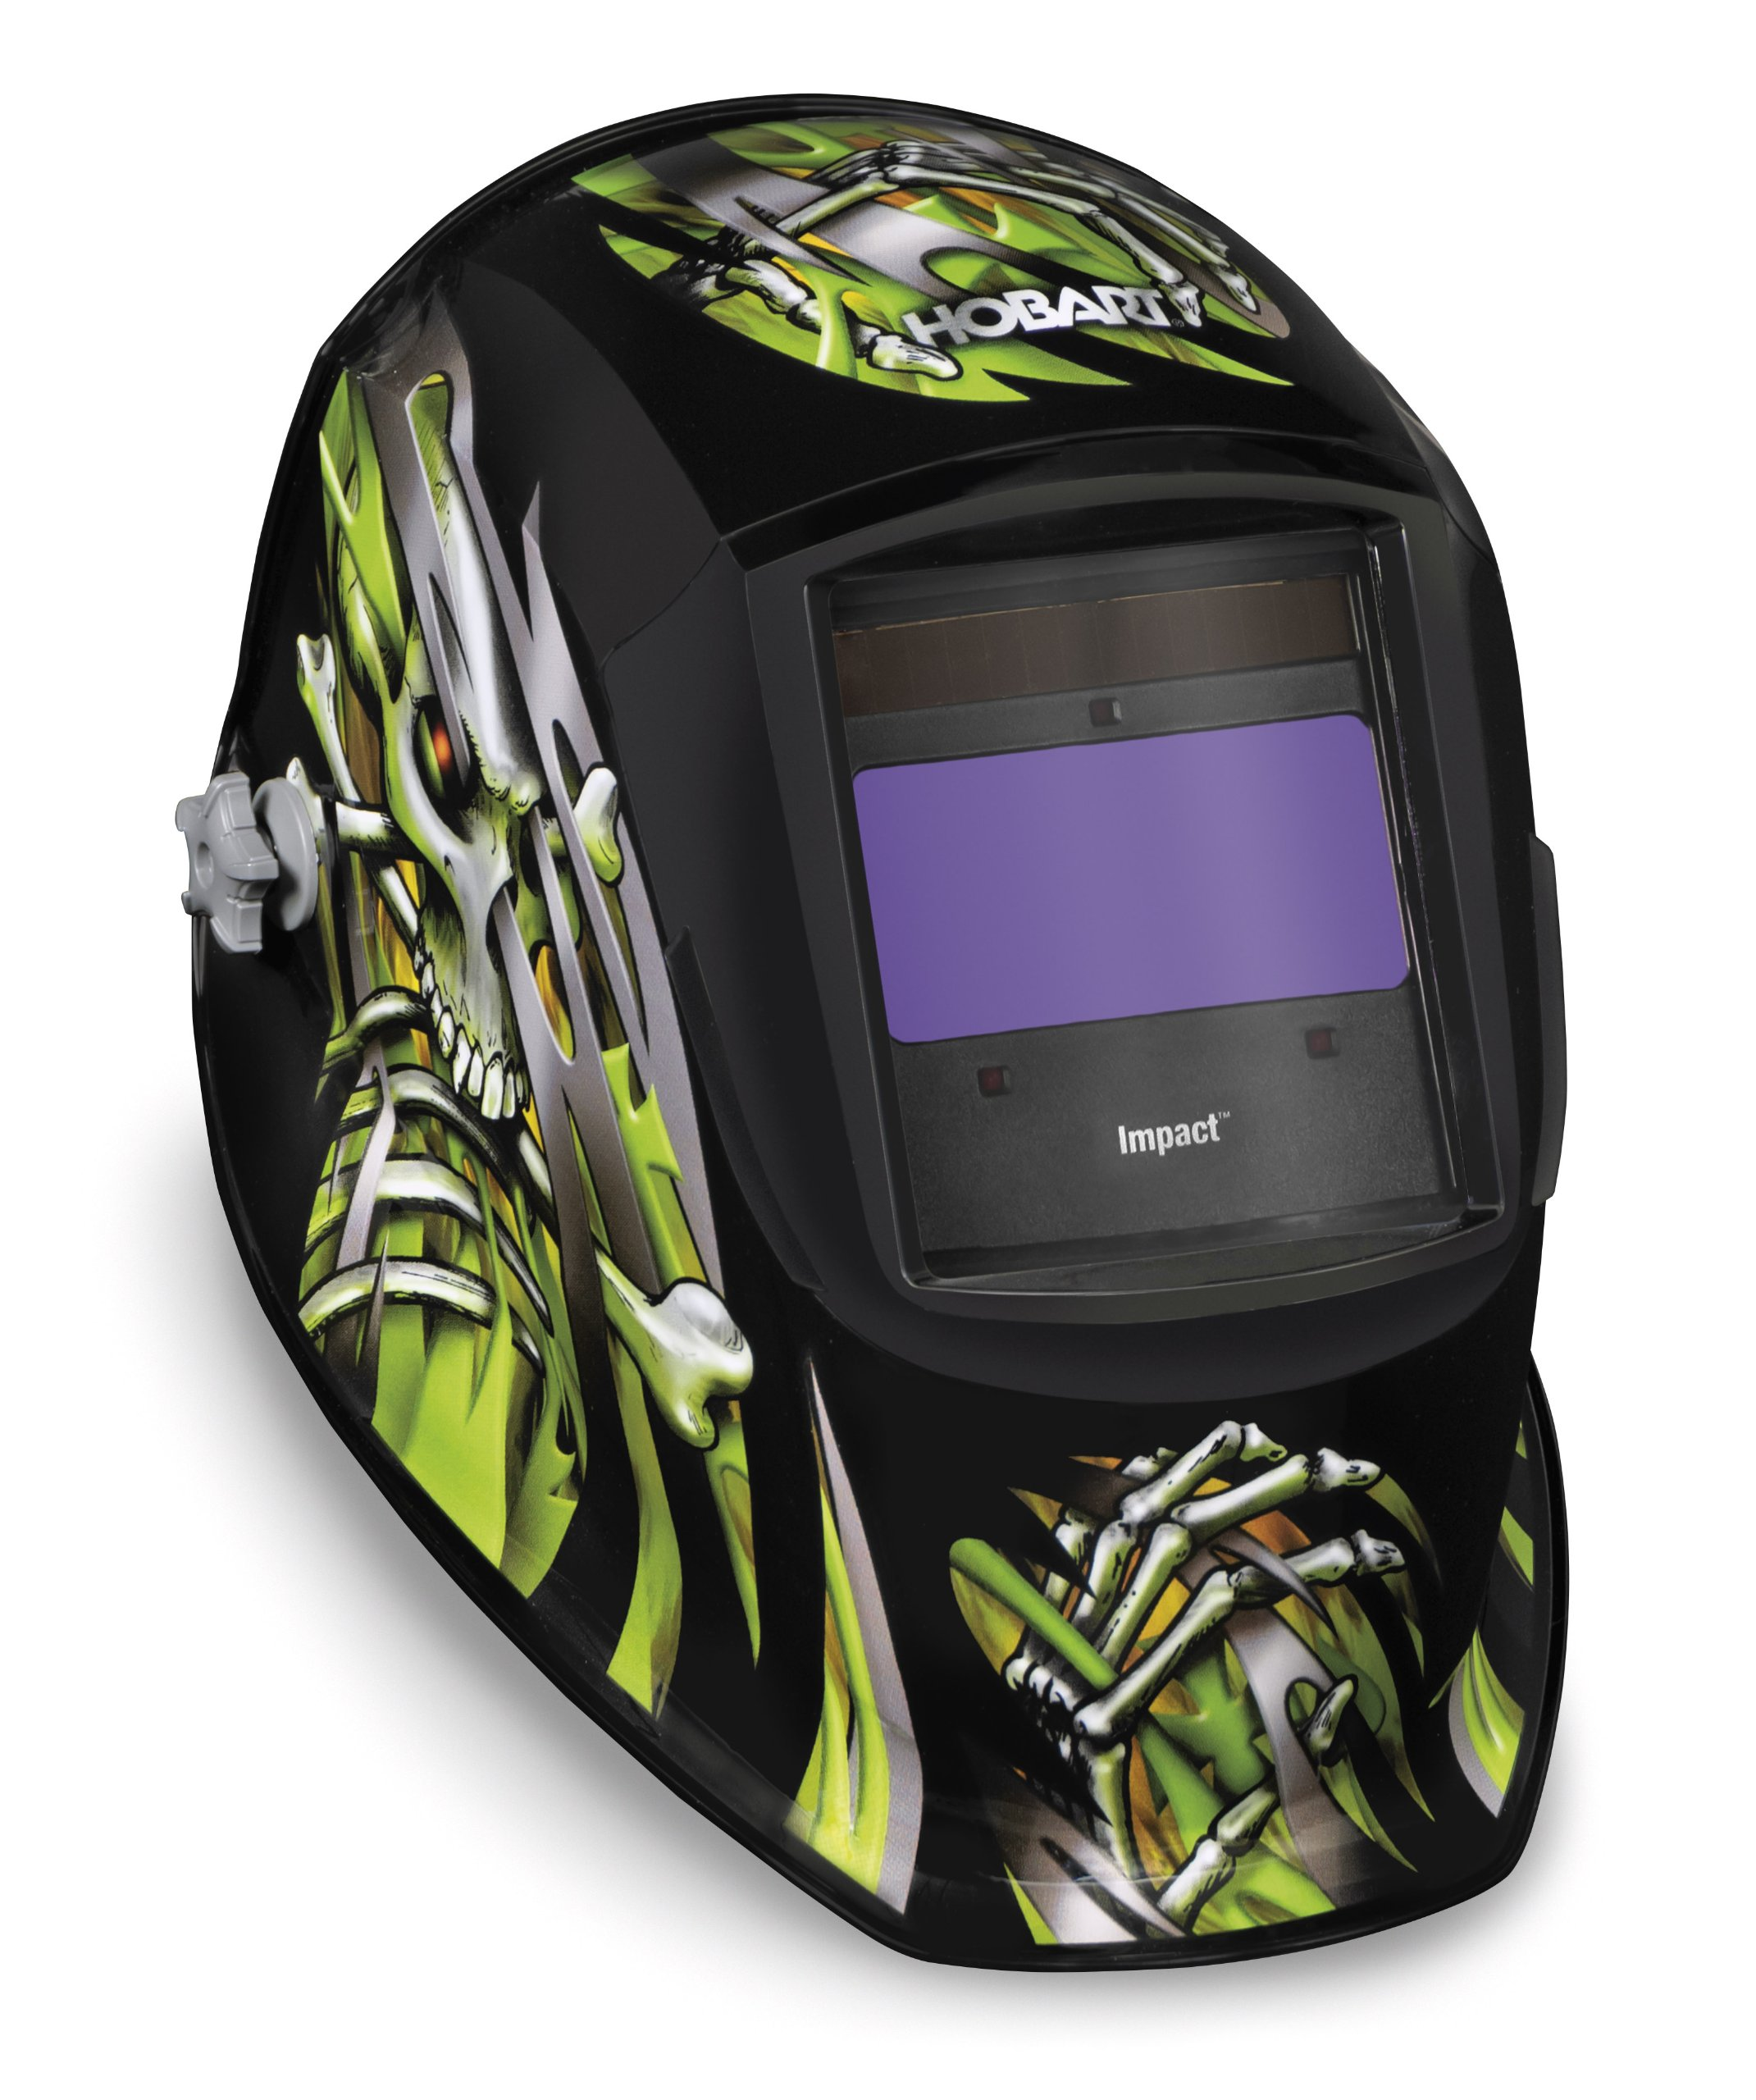 Hobart 770751 Impact Bonehead2 Variable Auto-Dark Helmet by Hobart (Image #2)